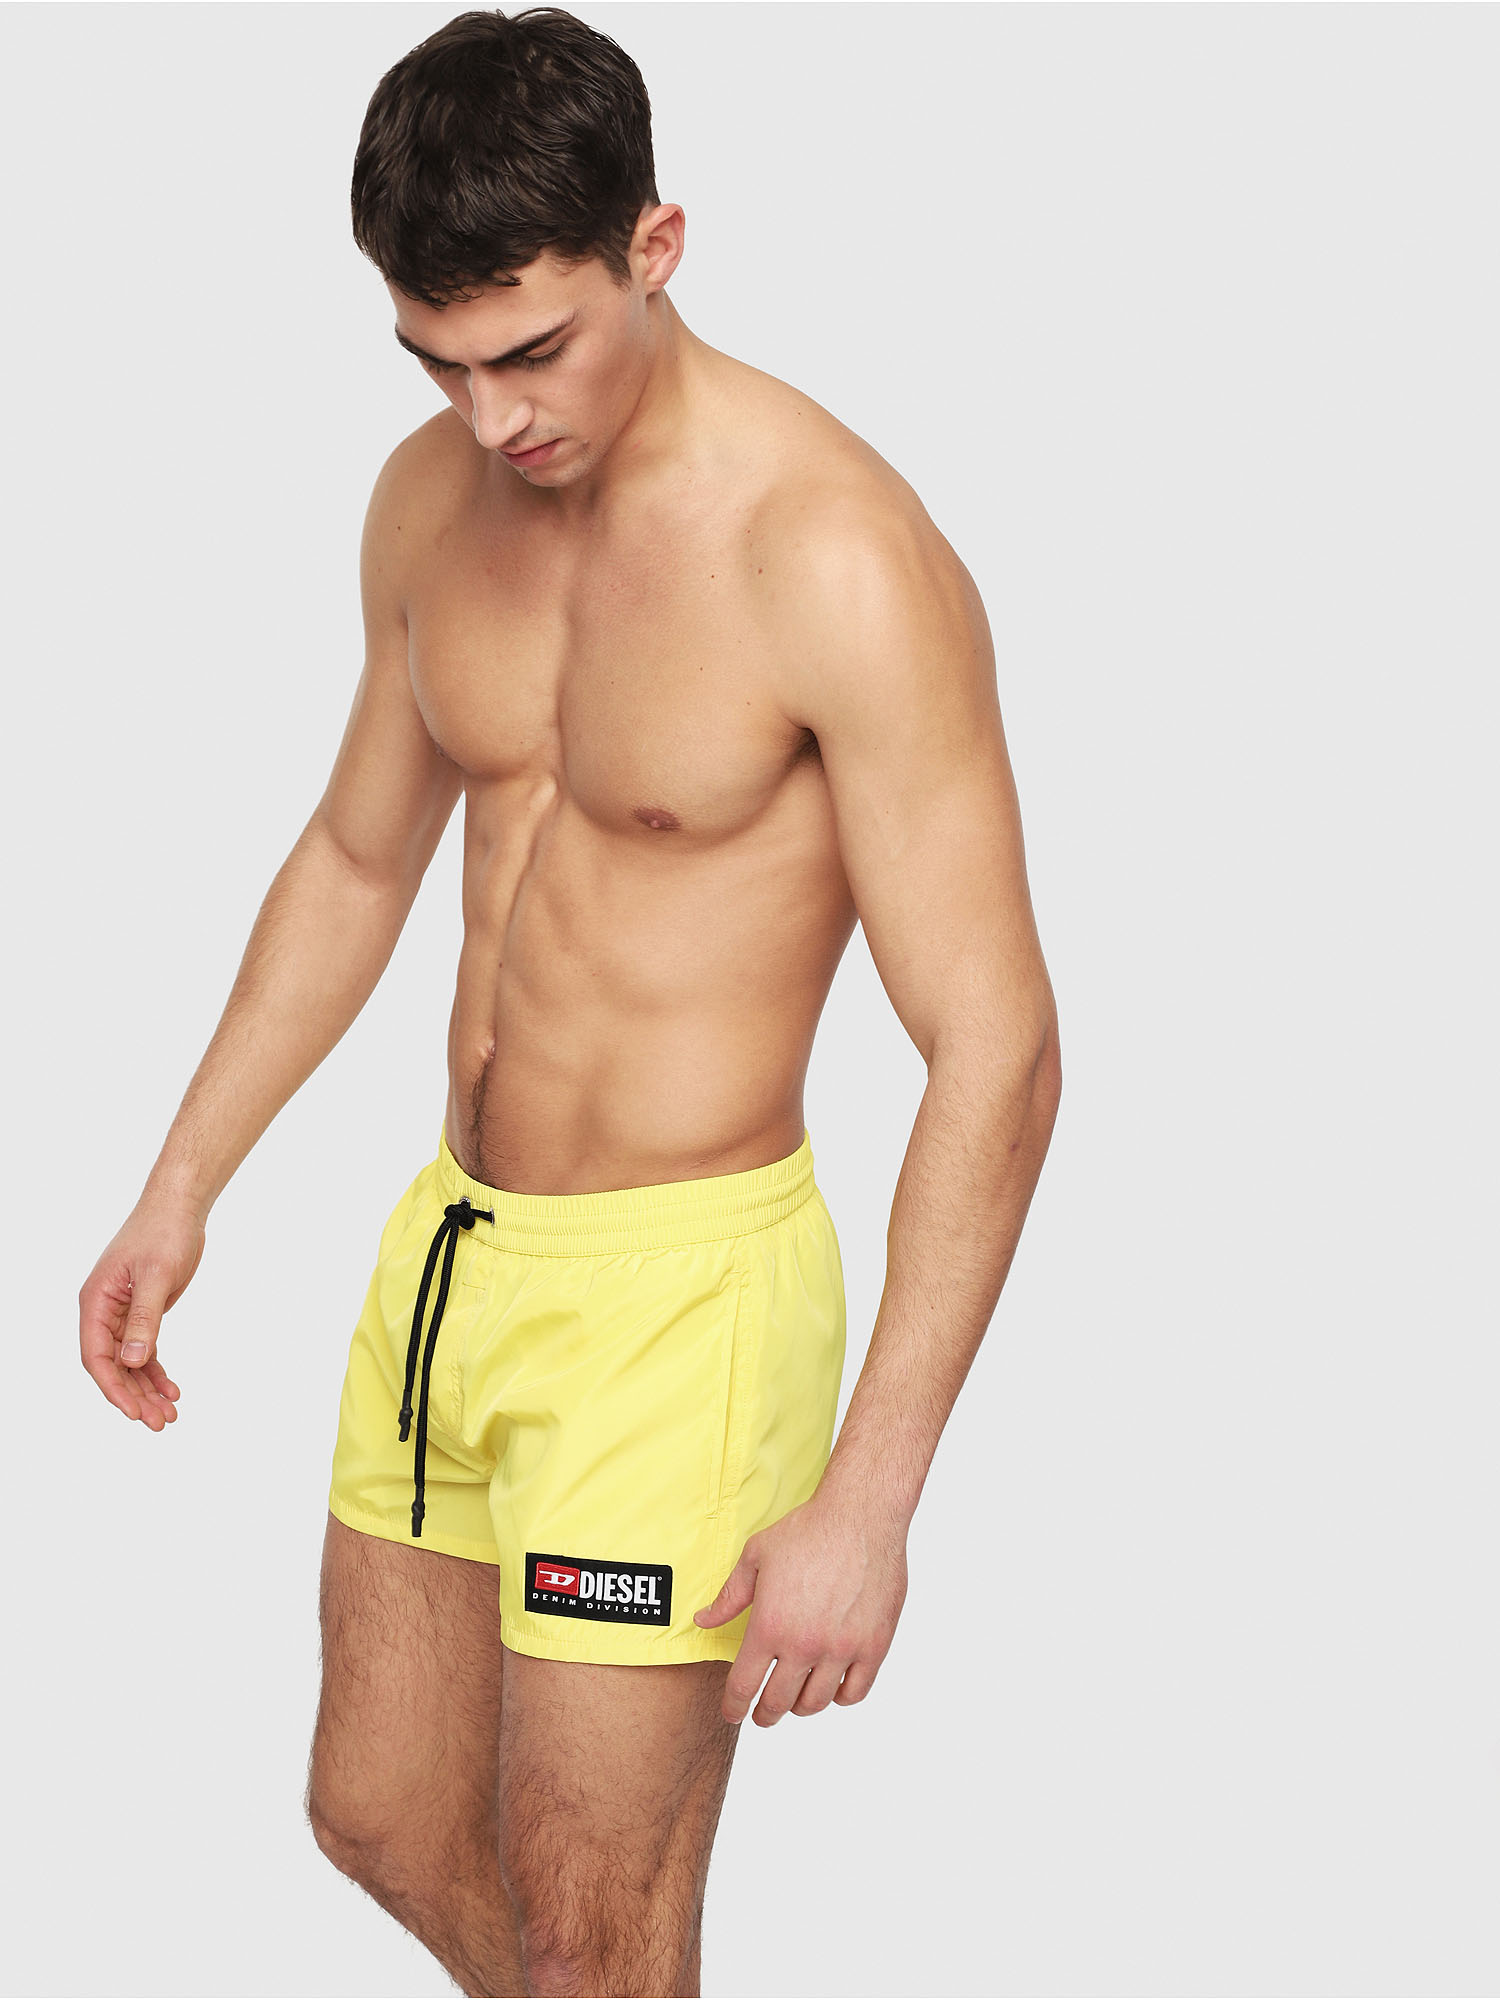 Diesel - BMBX-SANDY 2.017,  - Swim shorts - Image 1